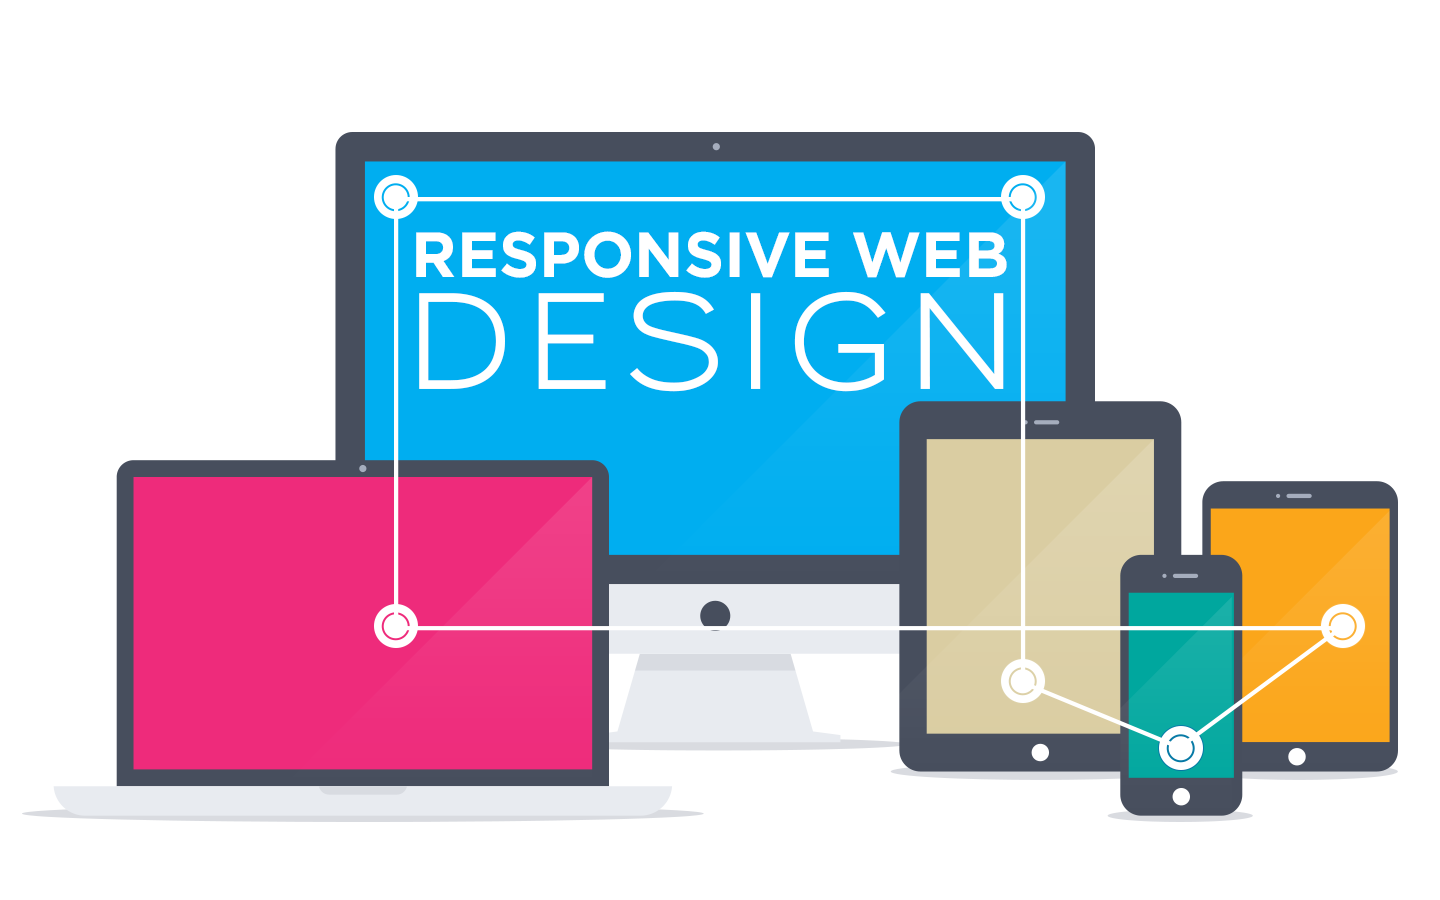 Have a mobile responsive design.